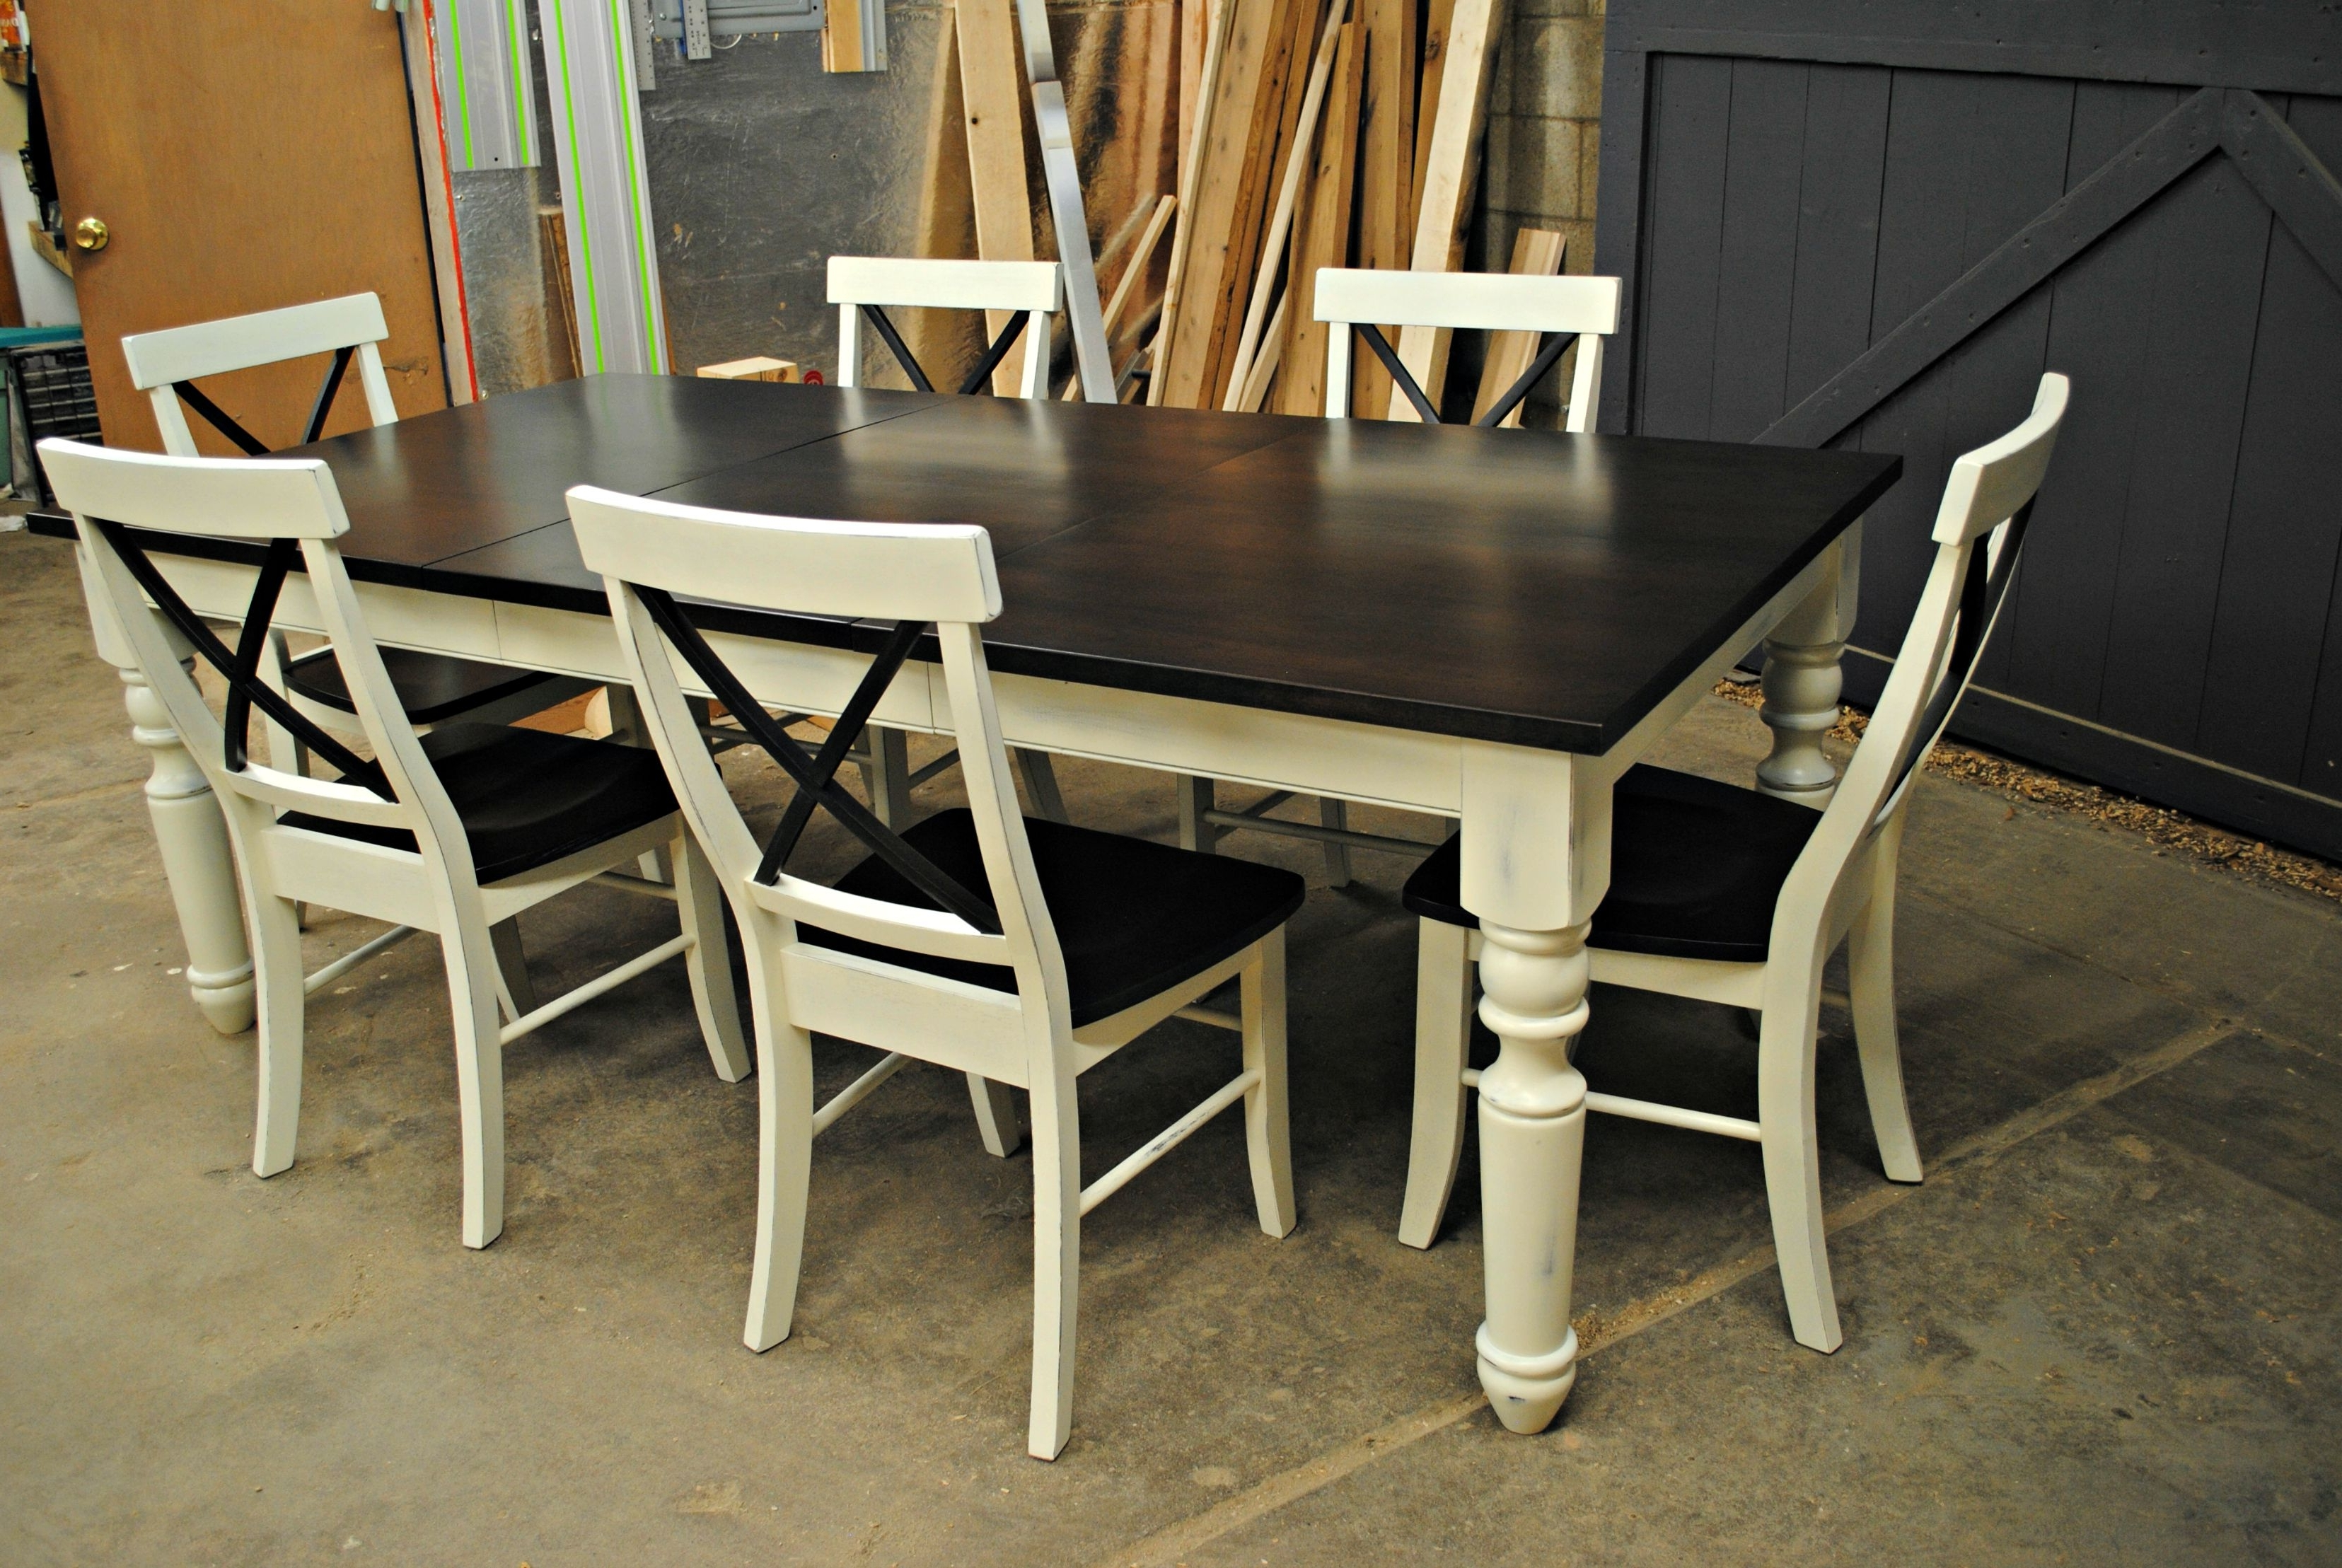 Custom Dining Table I The Common Table Intended For Well Known French Country Dining Tables (View 15 of 25)